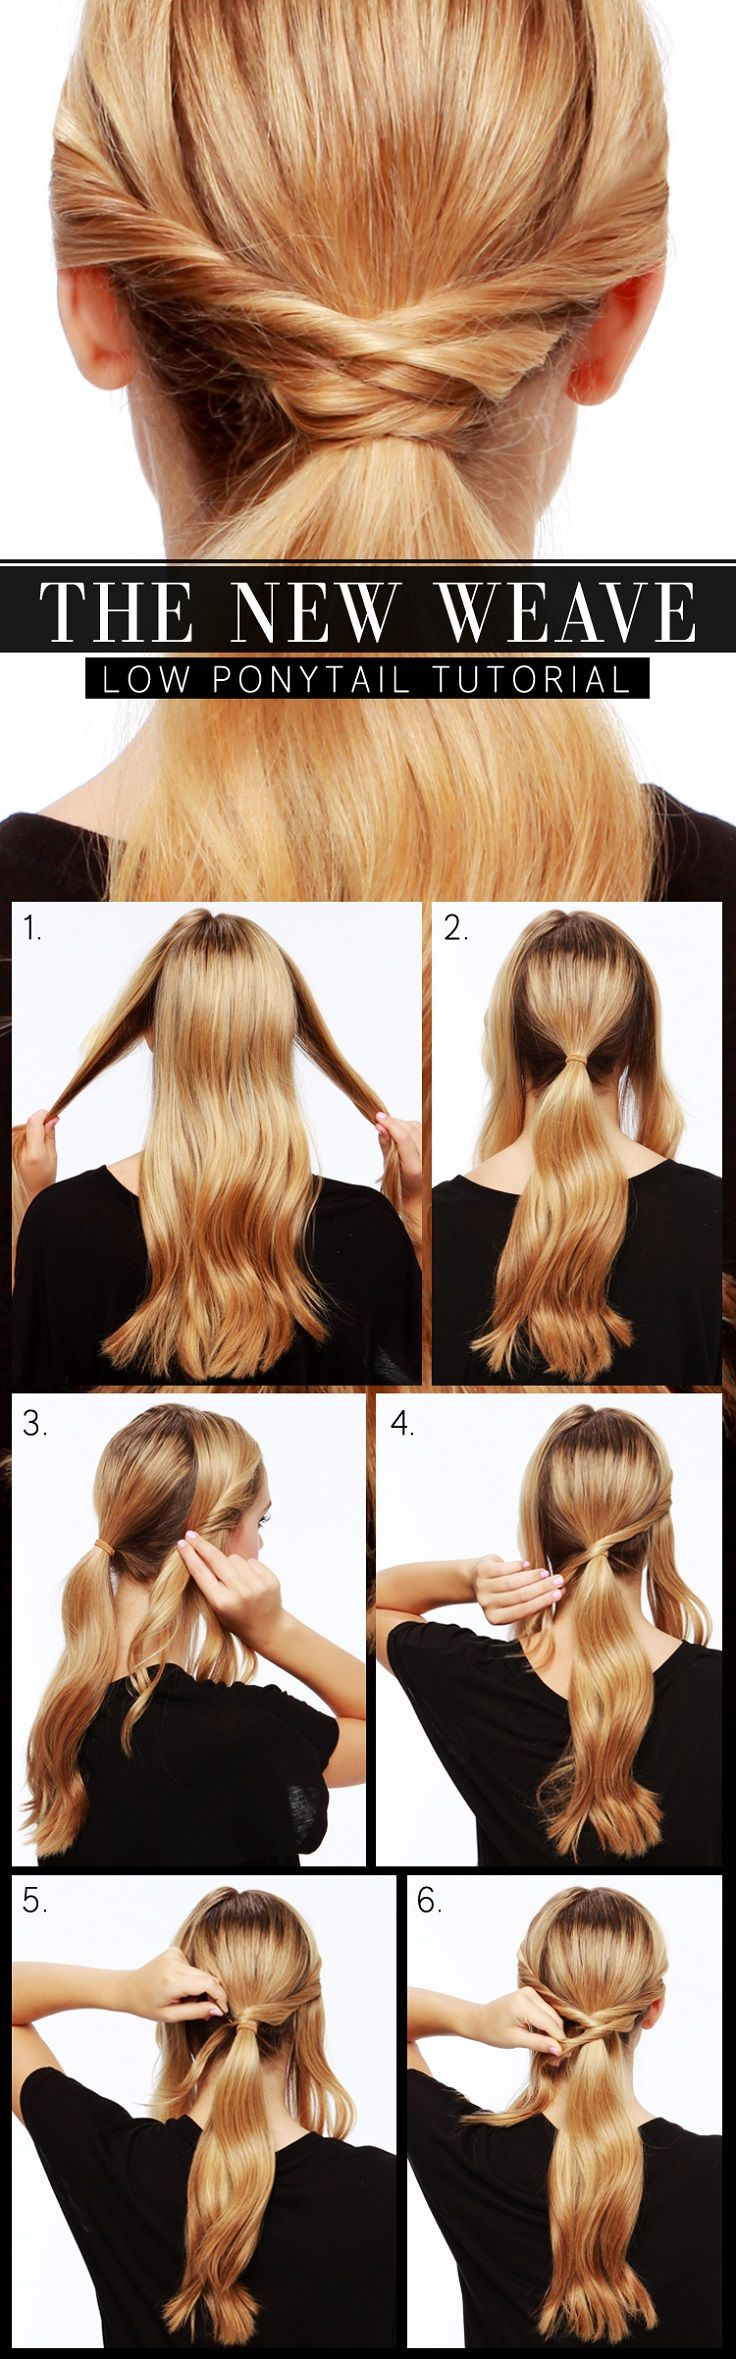 Top 10 Most Popular Hair Tutorials for Spring 2014